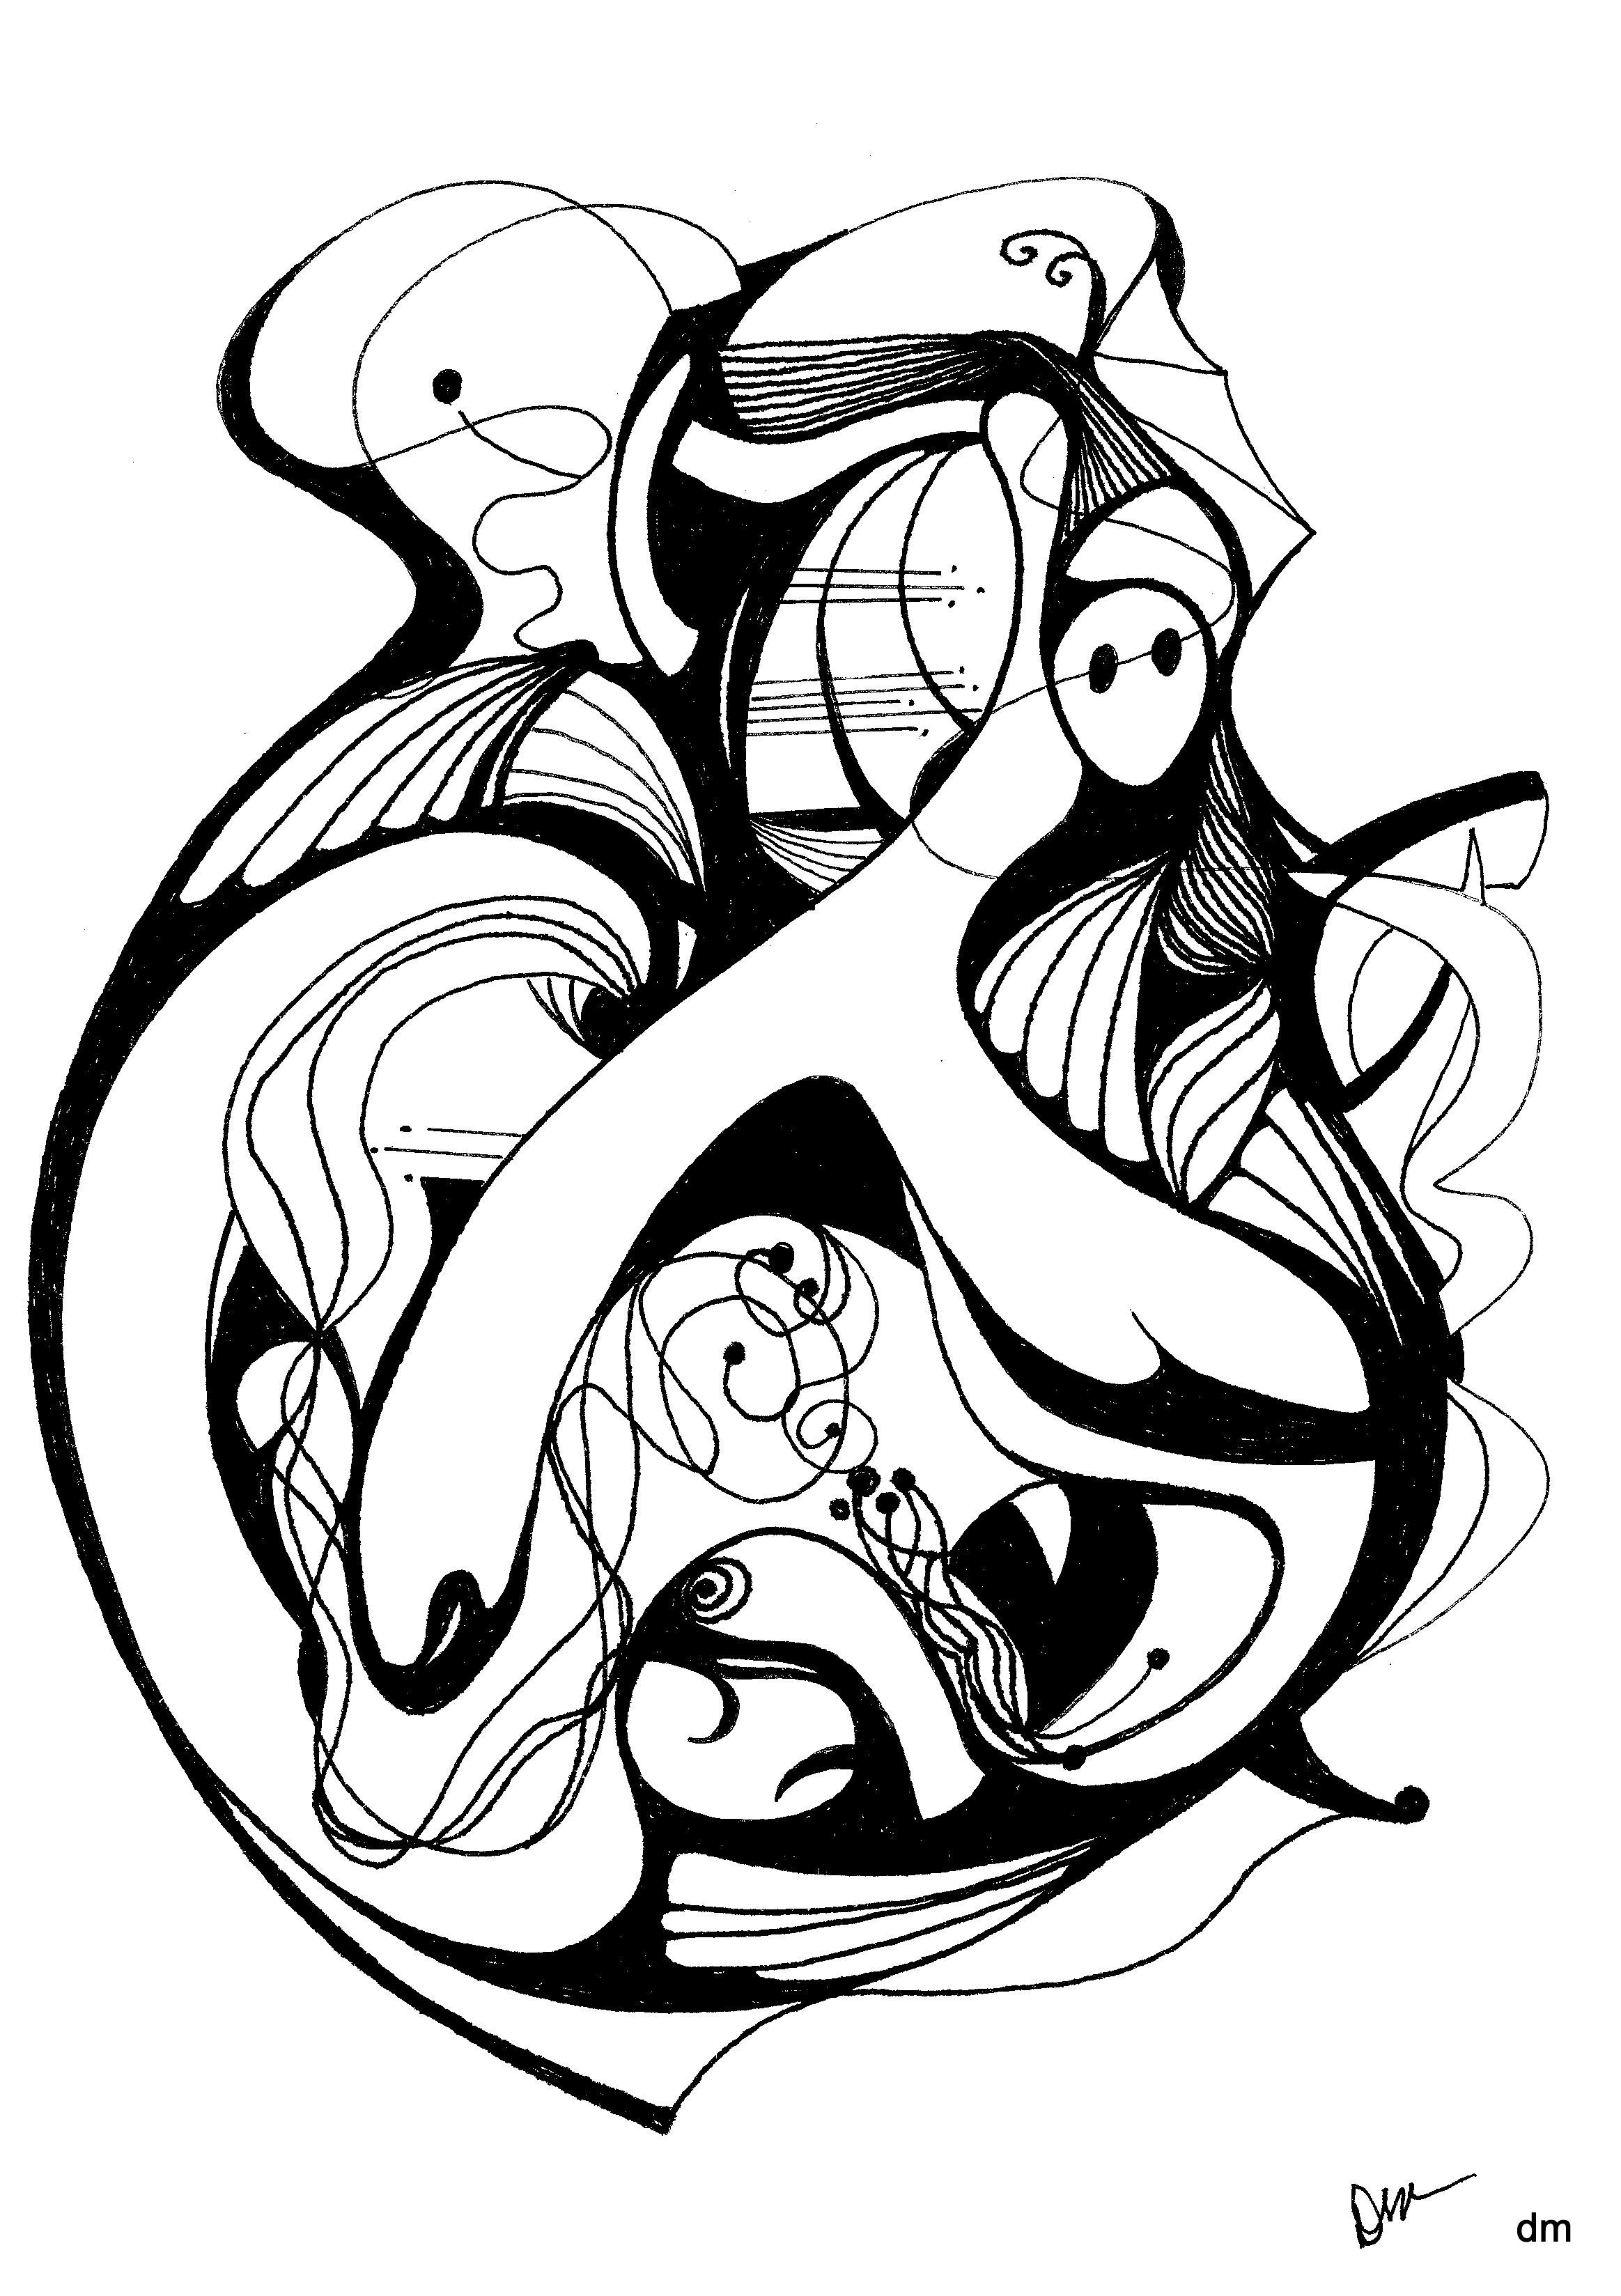 Ink Pen Drawing Free Download Best Ink Pen Drawing On